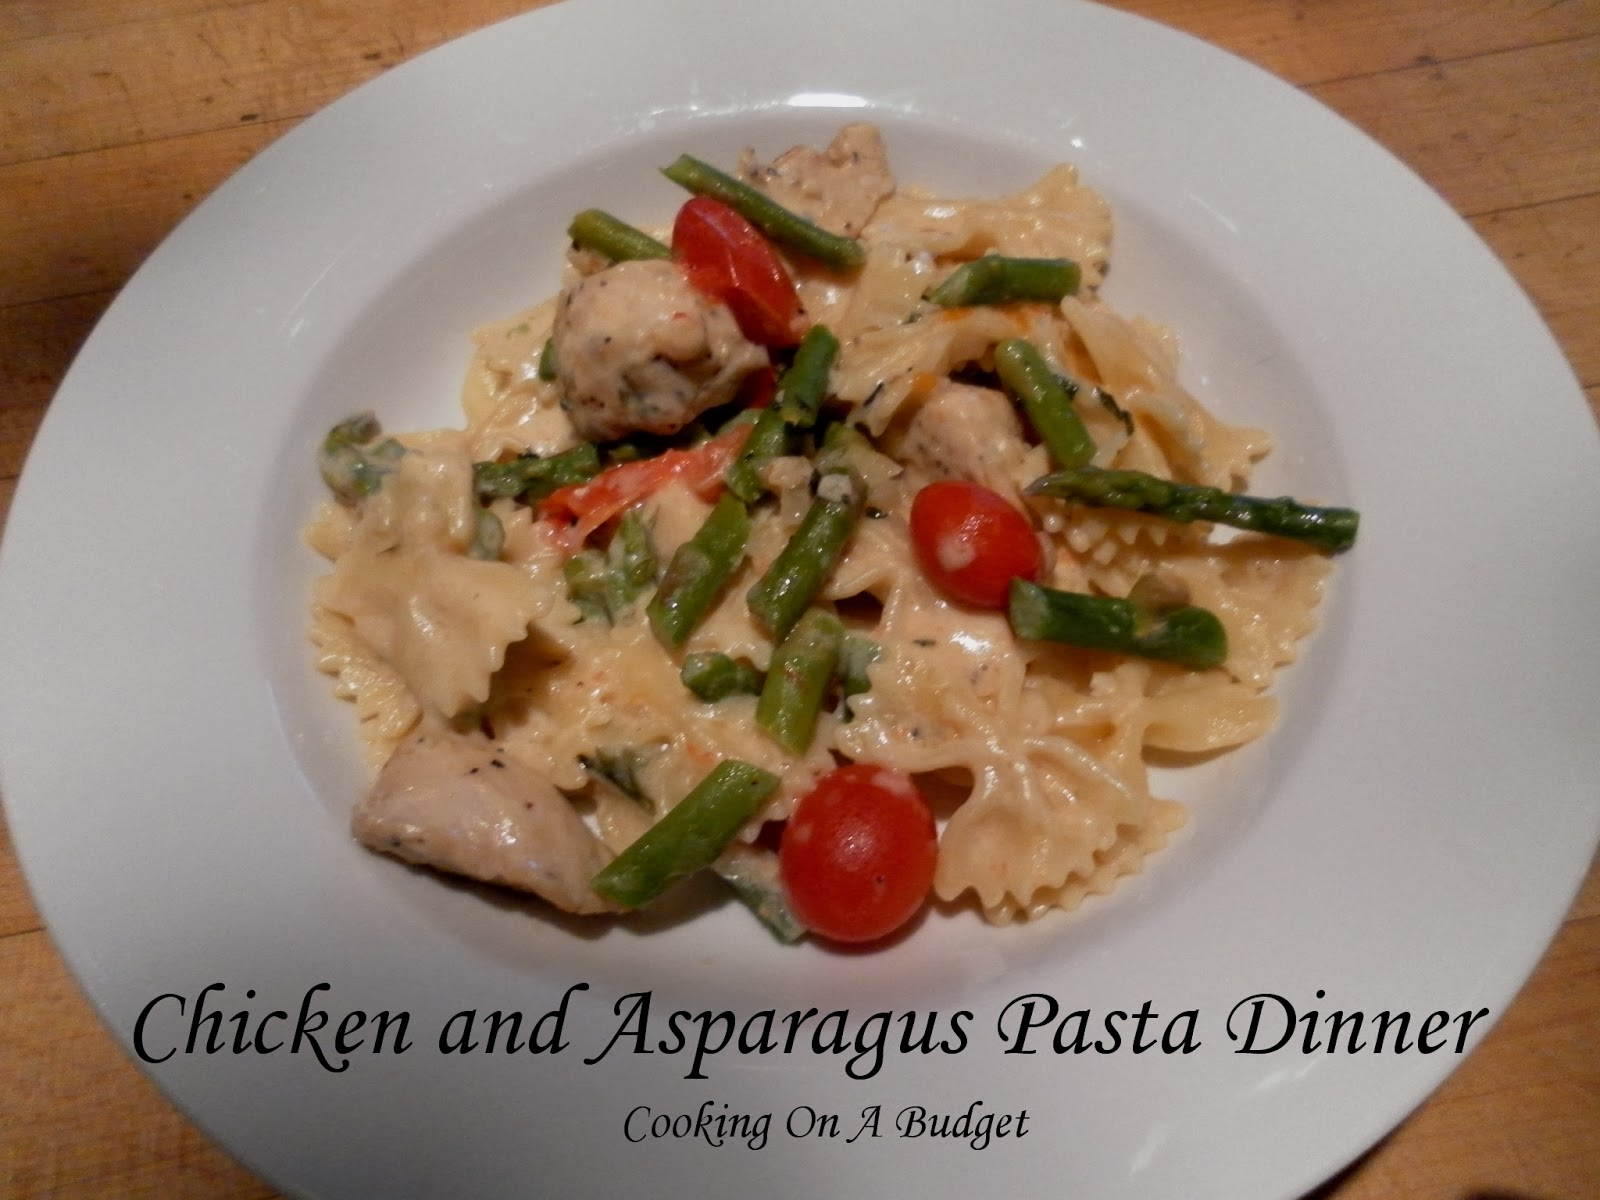 Cooking On A Budget: Chicken and Asparagus Pasta Dinner